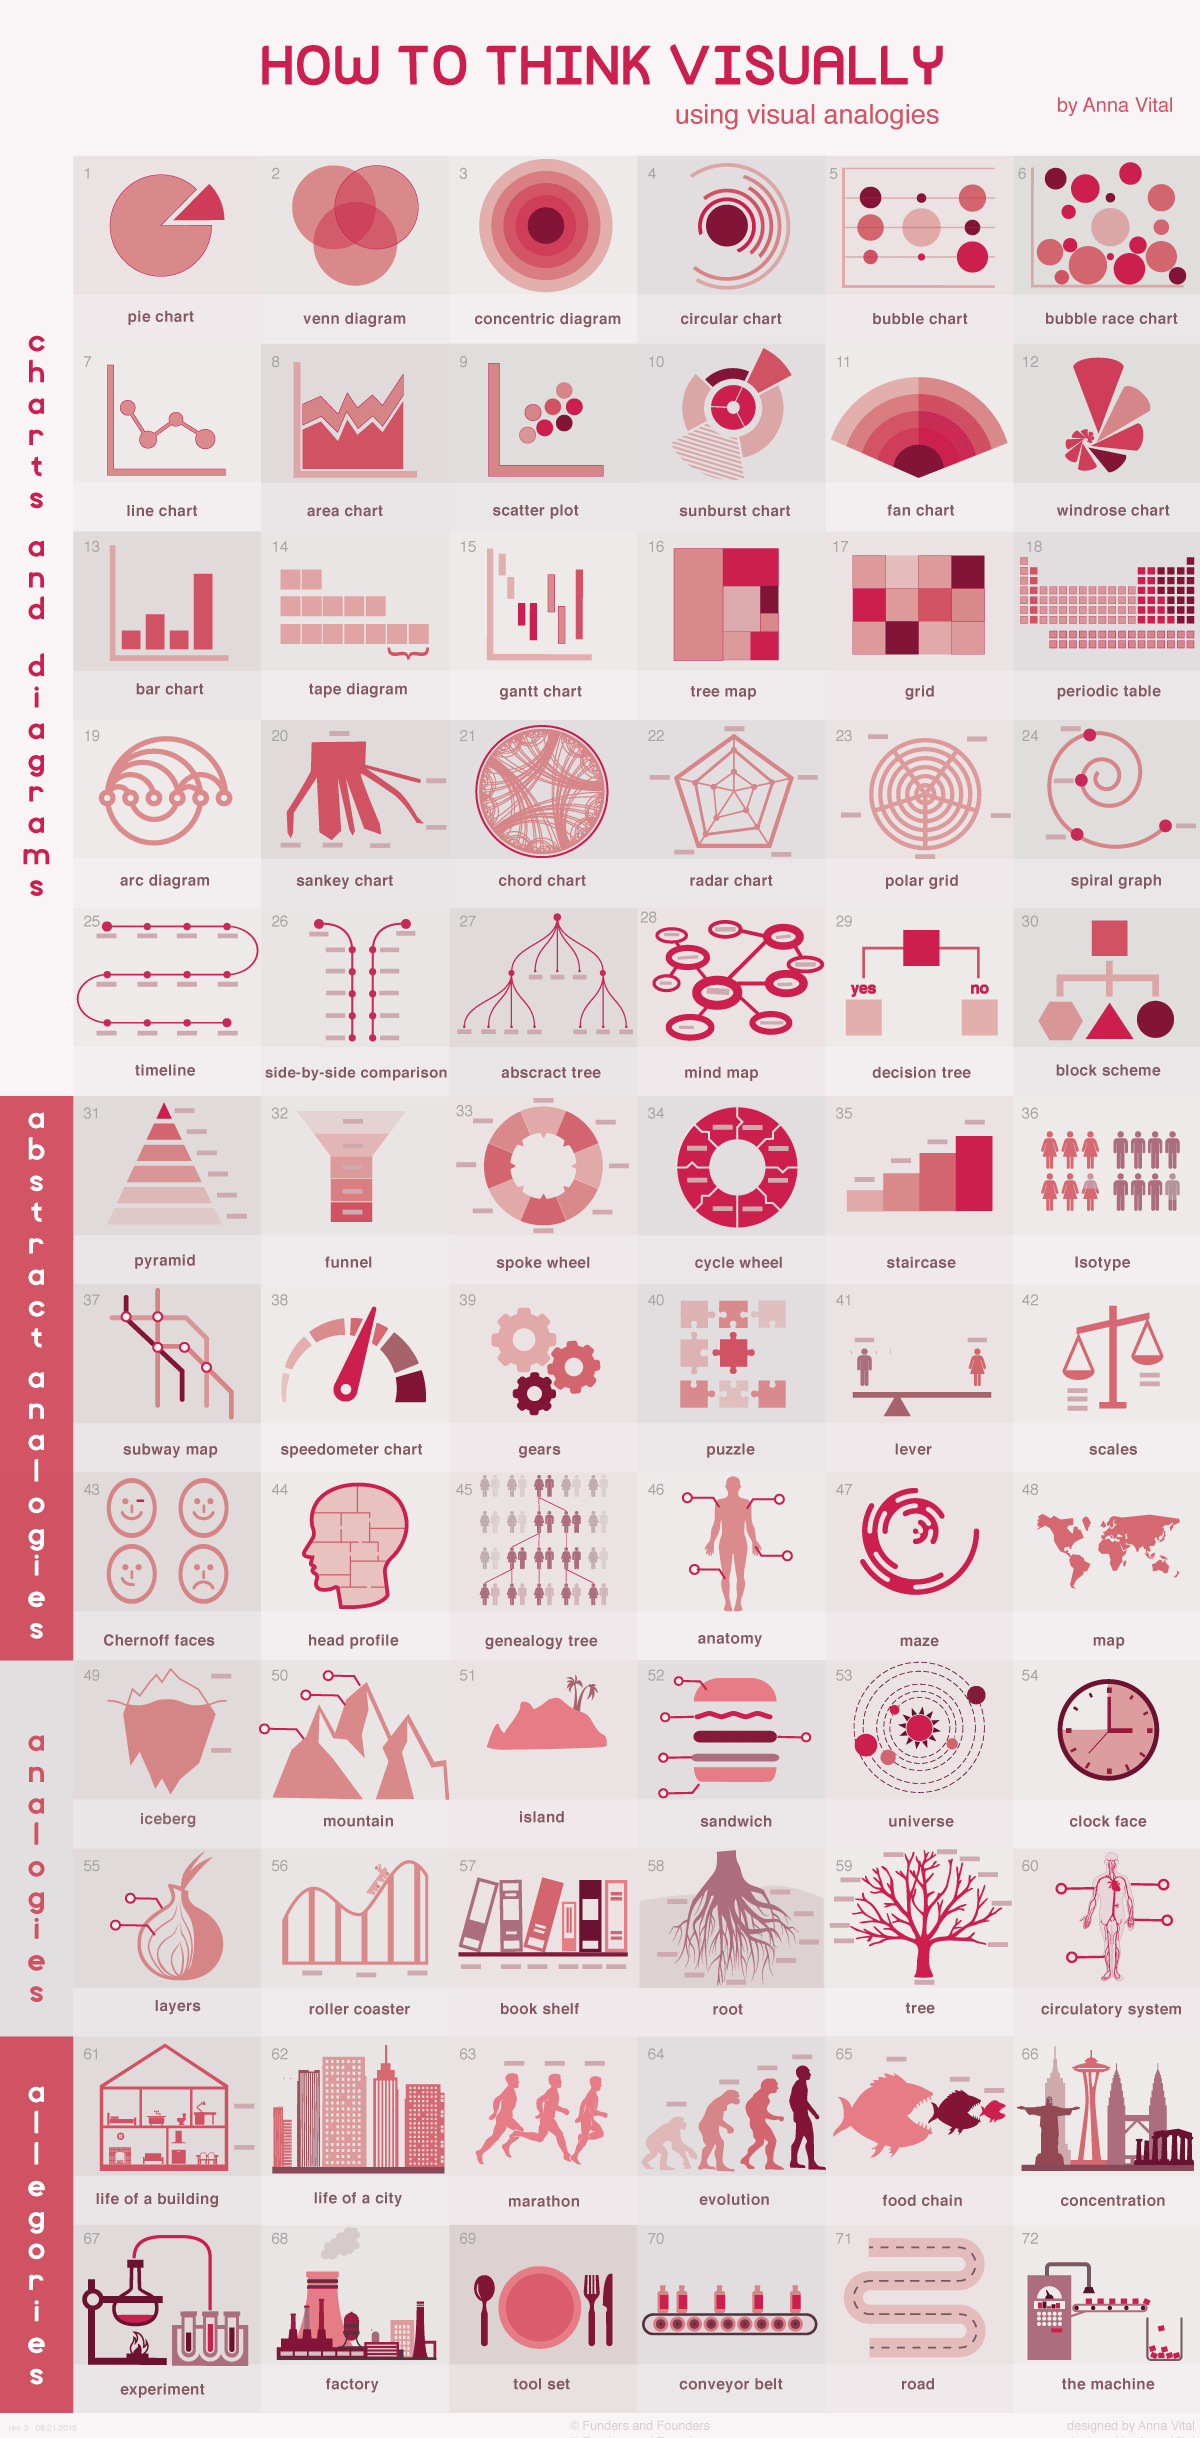 How to think visually using visual analogies infographic by anna vital